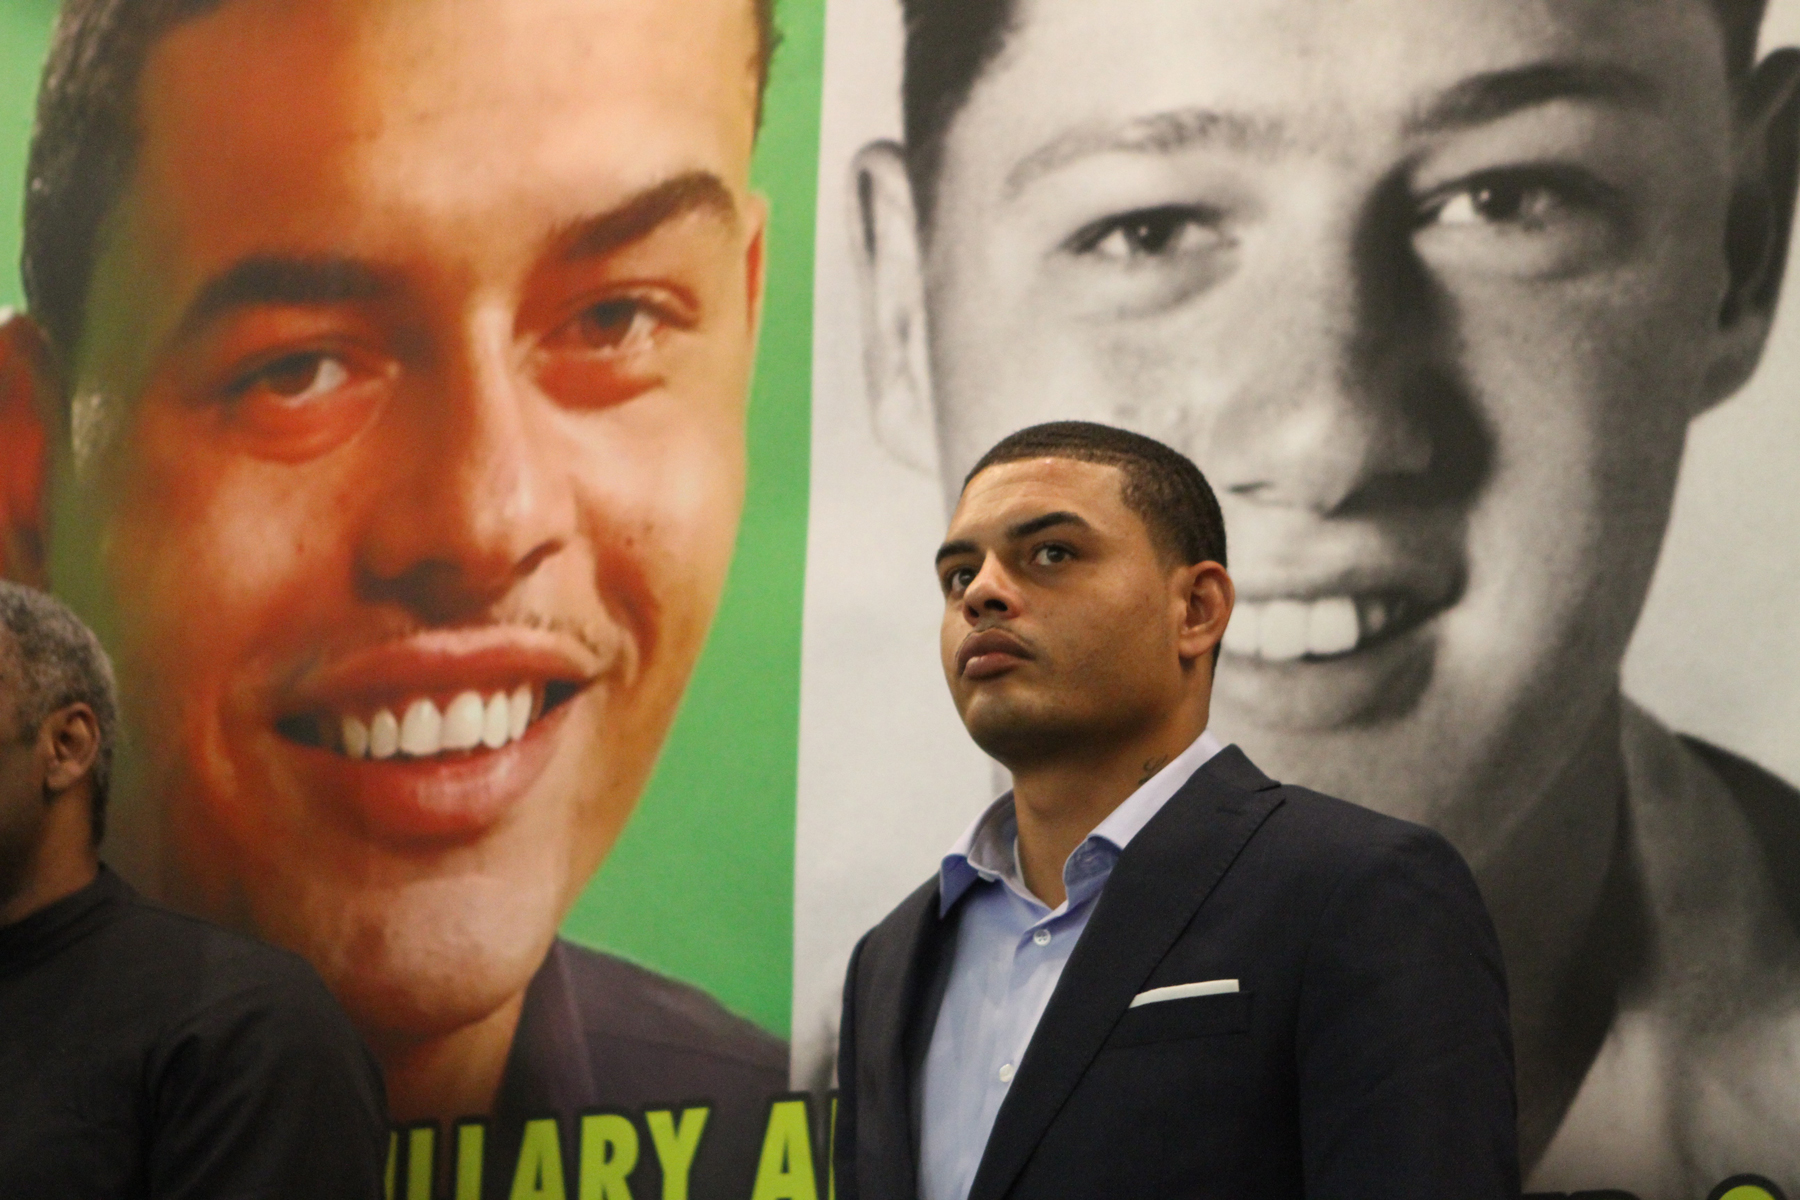 WASHINGTON, UNITED STATES - NOVEMBER 01: Danney Williams, who claims that former President Bill Clinton is his biological father, holds a news conference to call for Clinton to submit to a DNA test at the National Press Club in Washington, D.C., USA on November 01, 2016. (Photo by Michael Hernandez/Anadolu Agency/Getty Images)